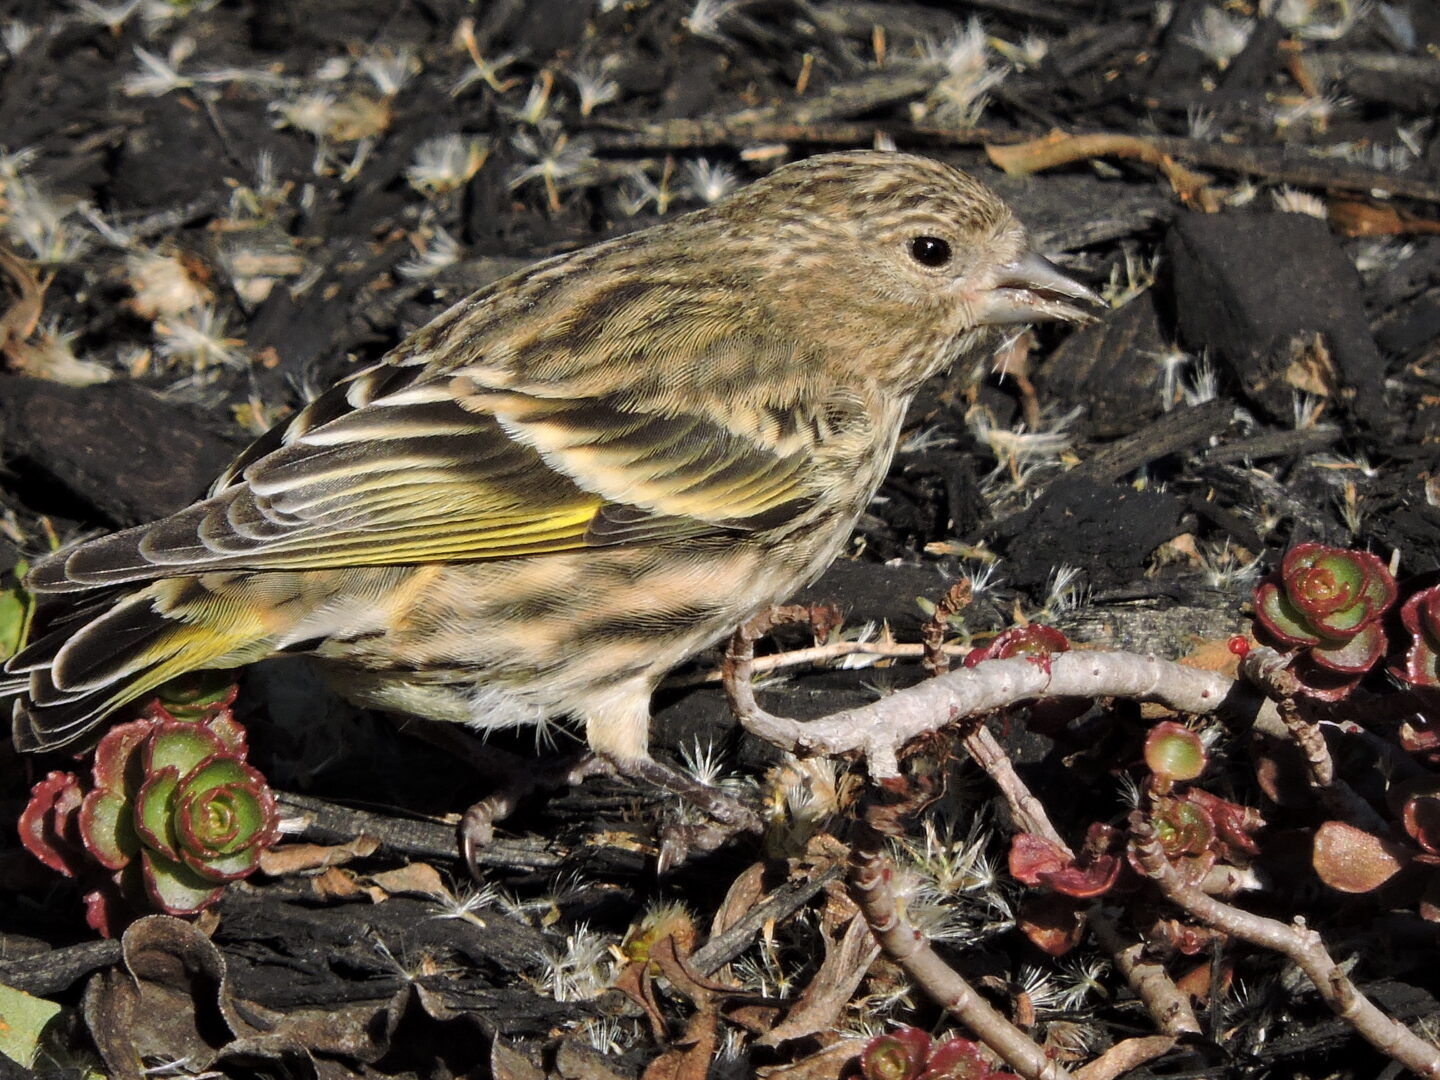 I did enjoy seeing these pine siskins!